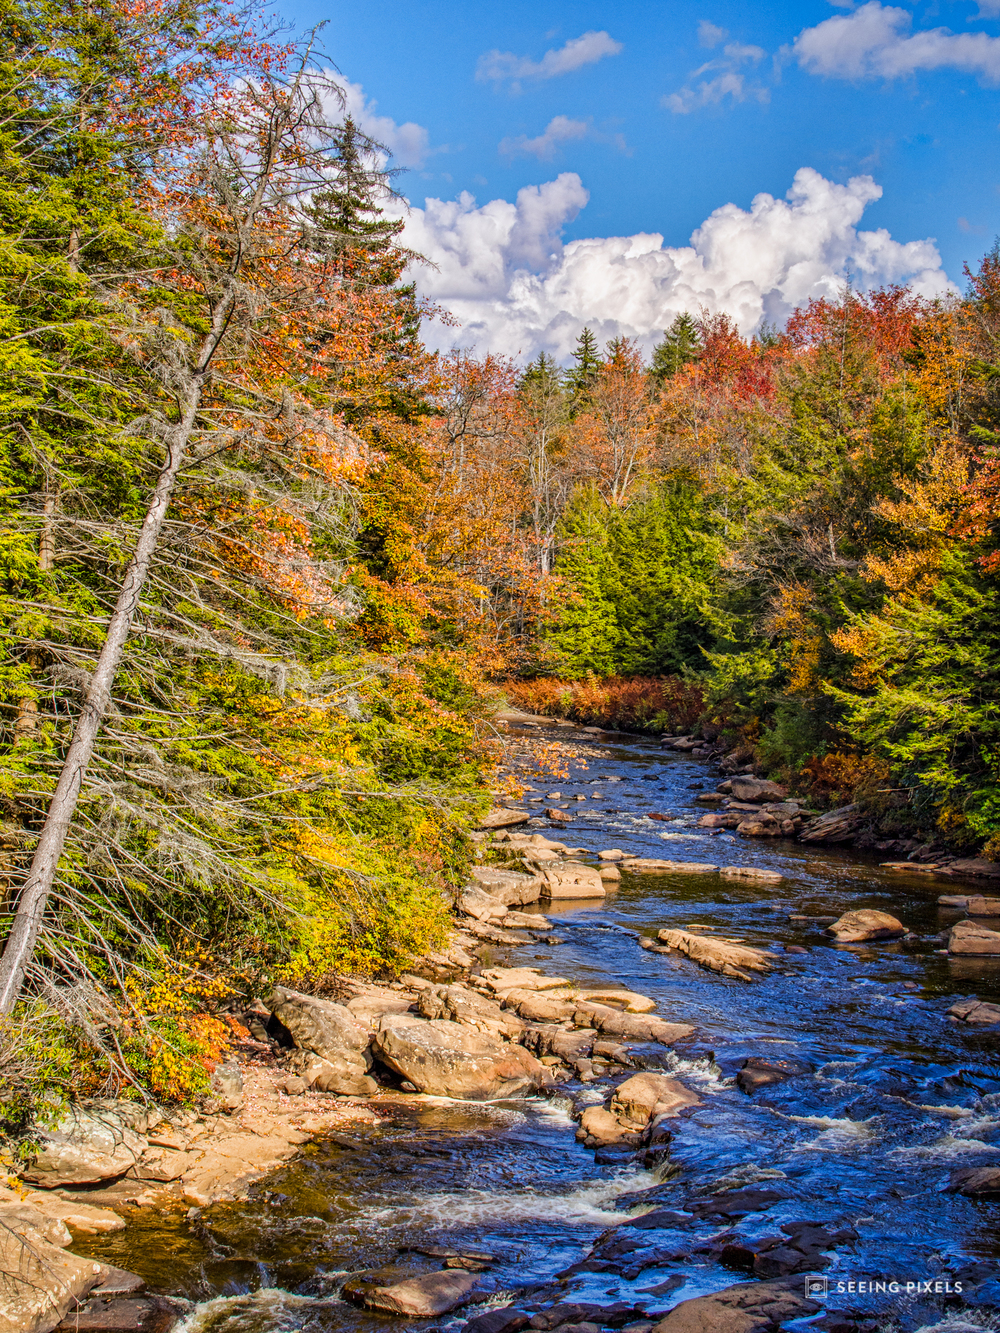 The Blackwater river flows continuously amongst the rocks and trees